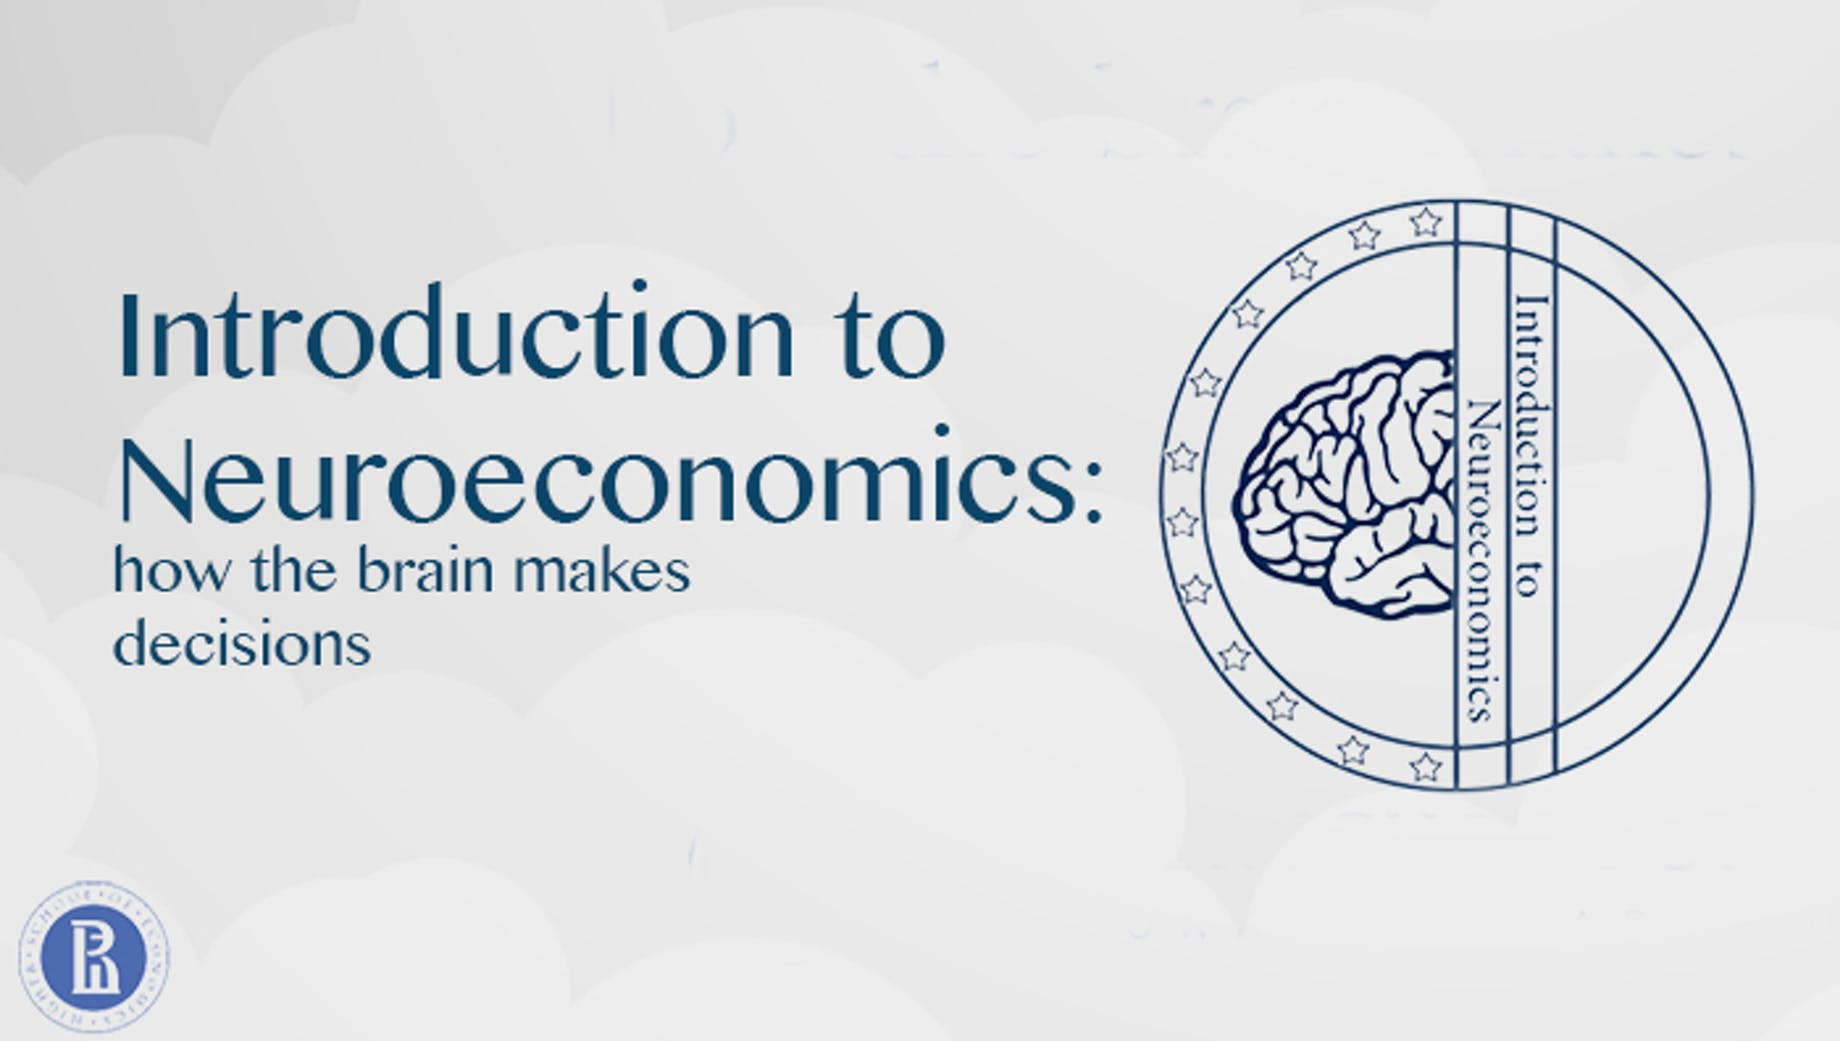 Introduction to Neuroeconomics: How the Brain Makes Decisions | Coursera